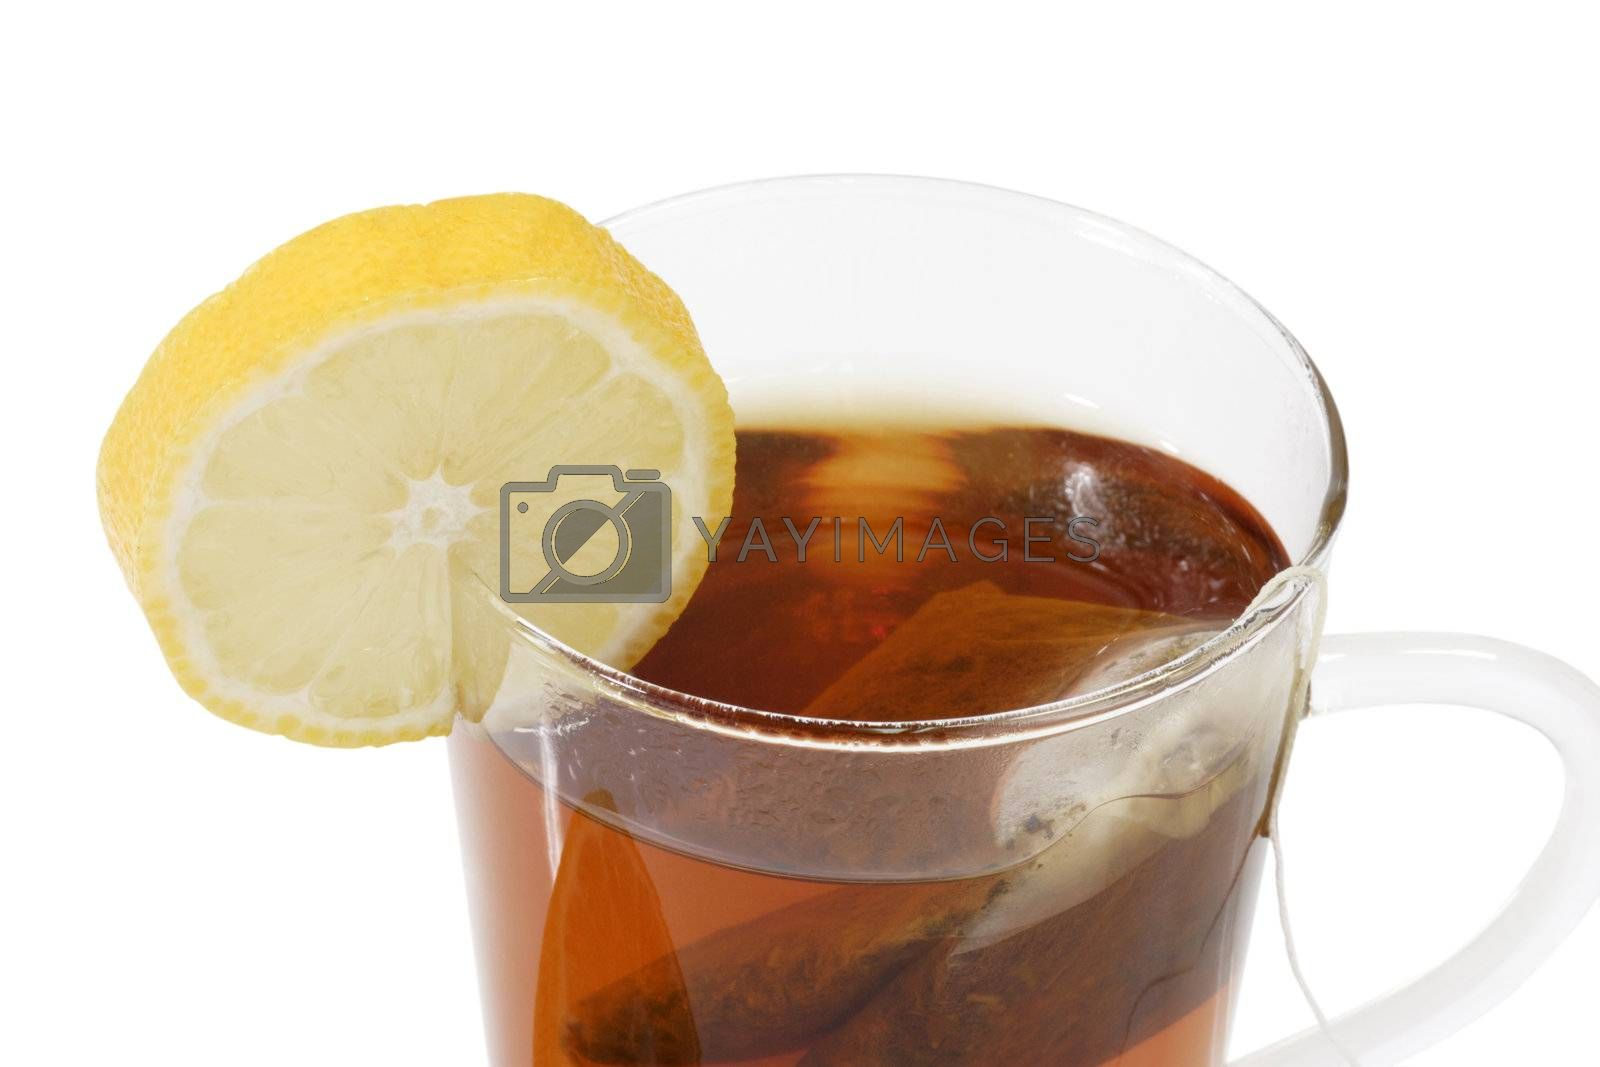 Tee in a glass with a lemon slice - isolated on white background